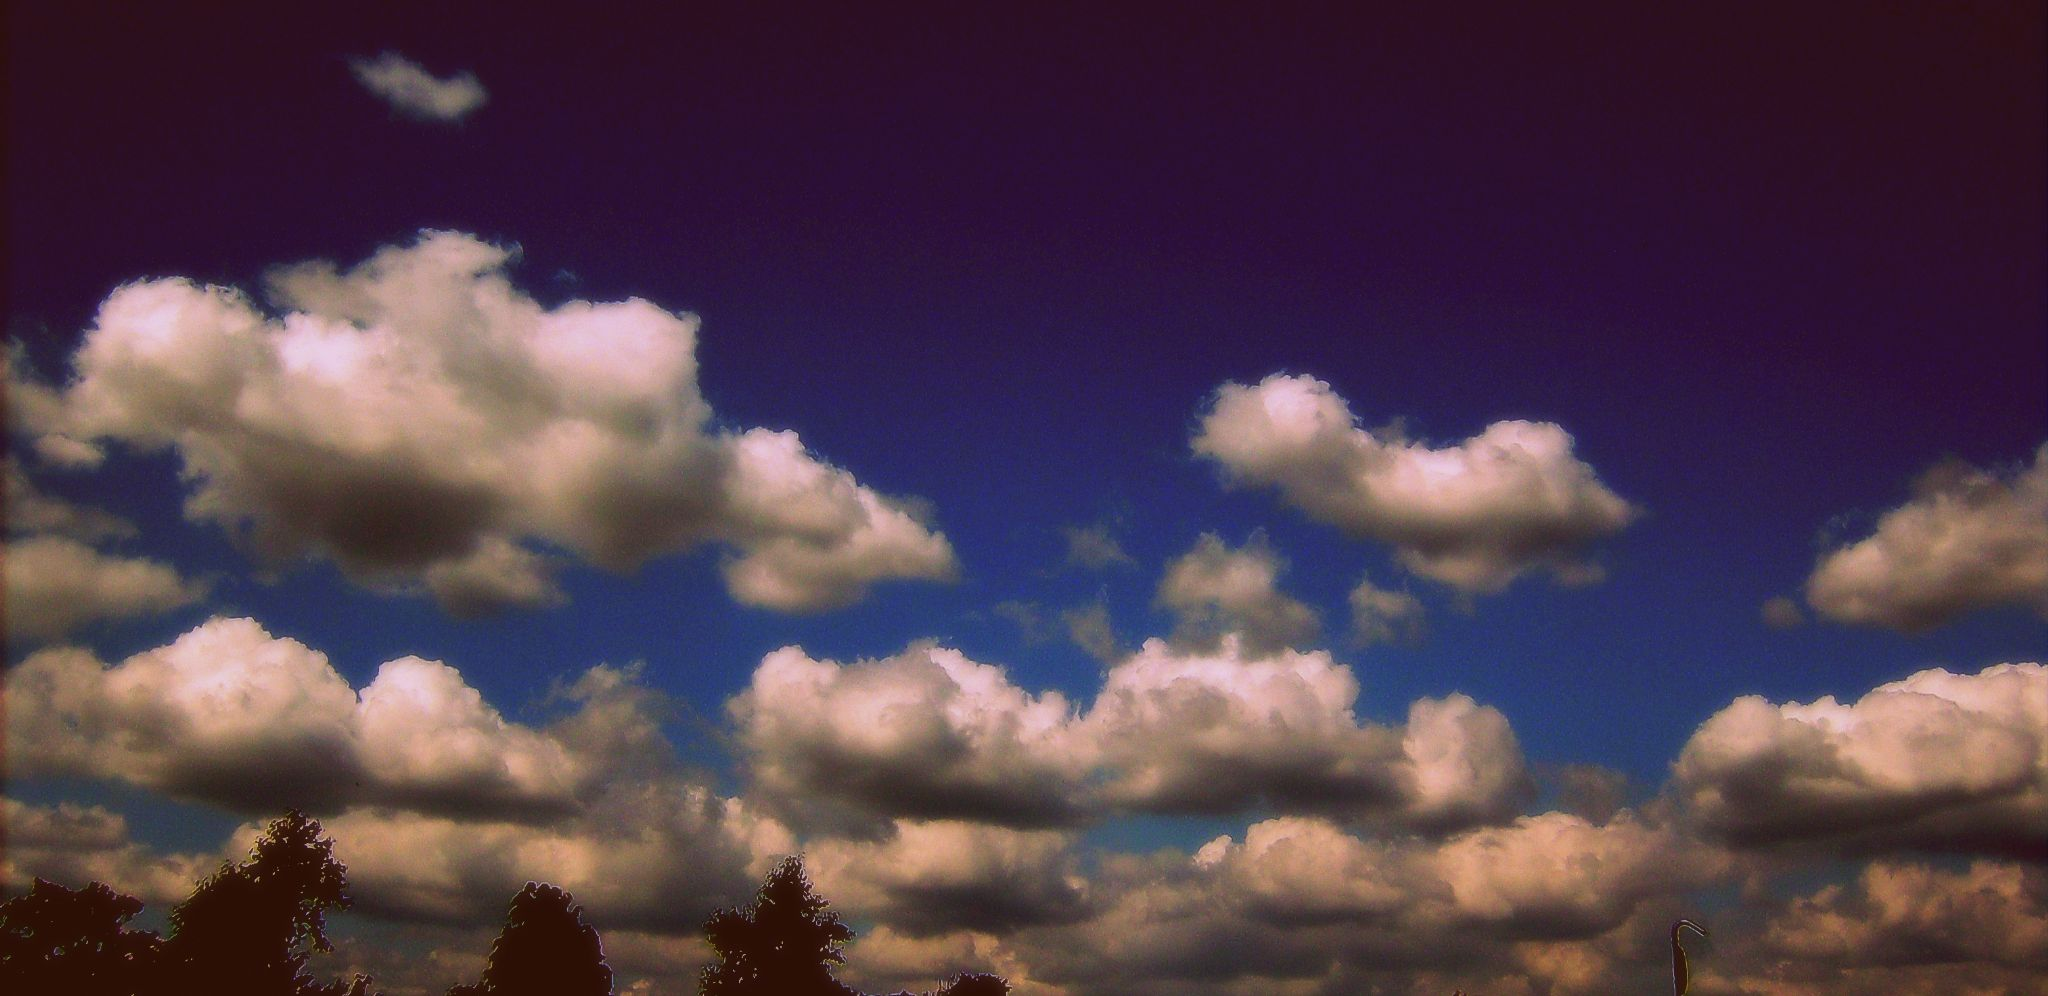 Cotton Wool Clouds by Michelle Dimascio